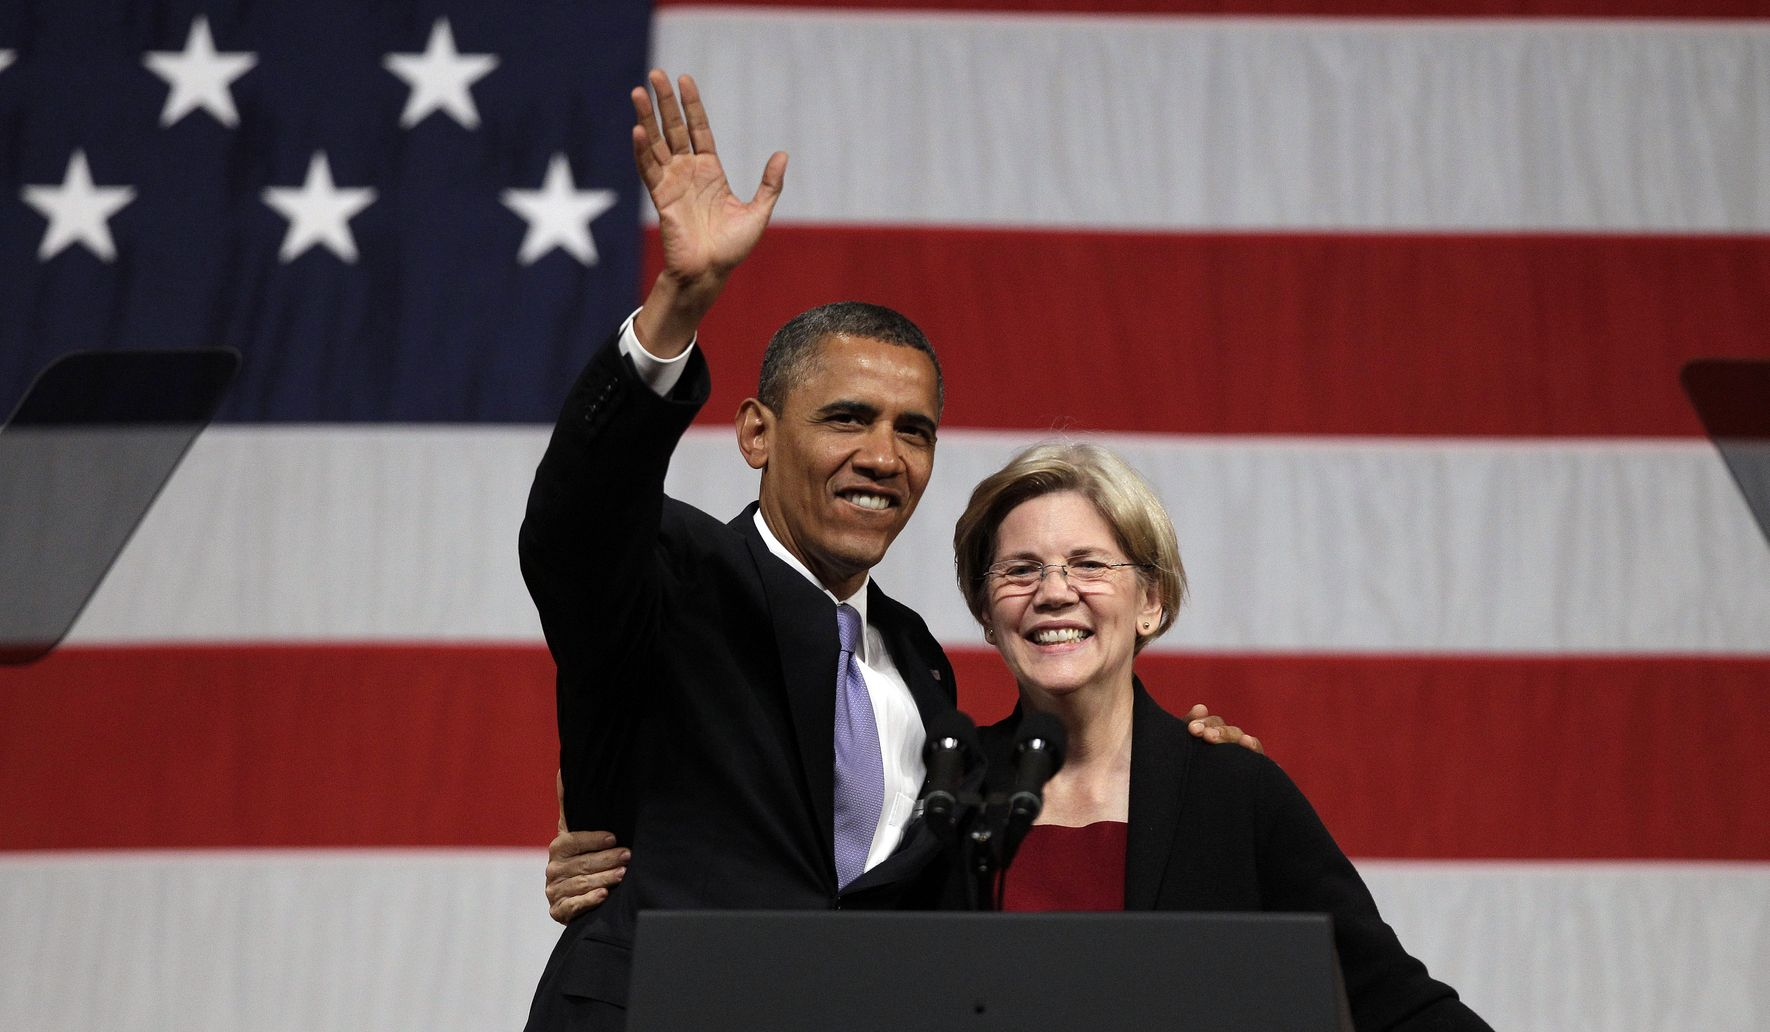 Elizabeth Warren challenges Joe Biden as Obama legacy heir